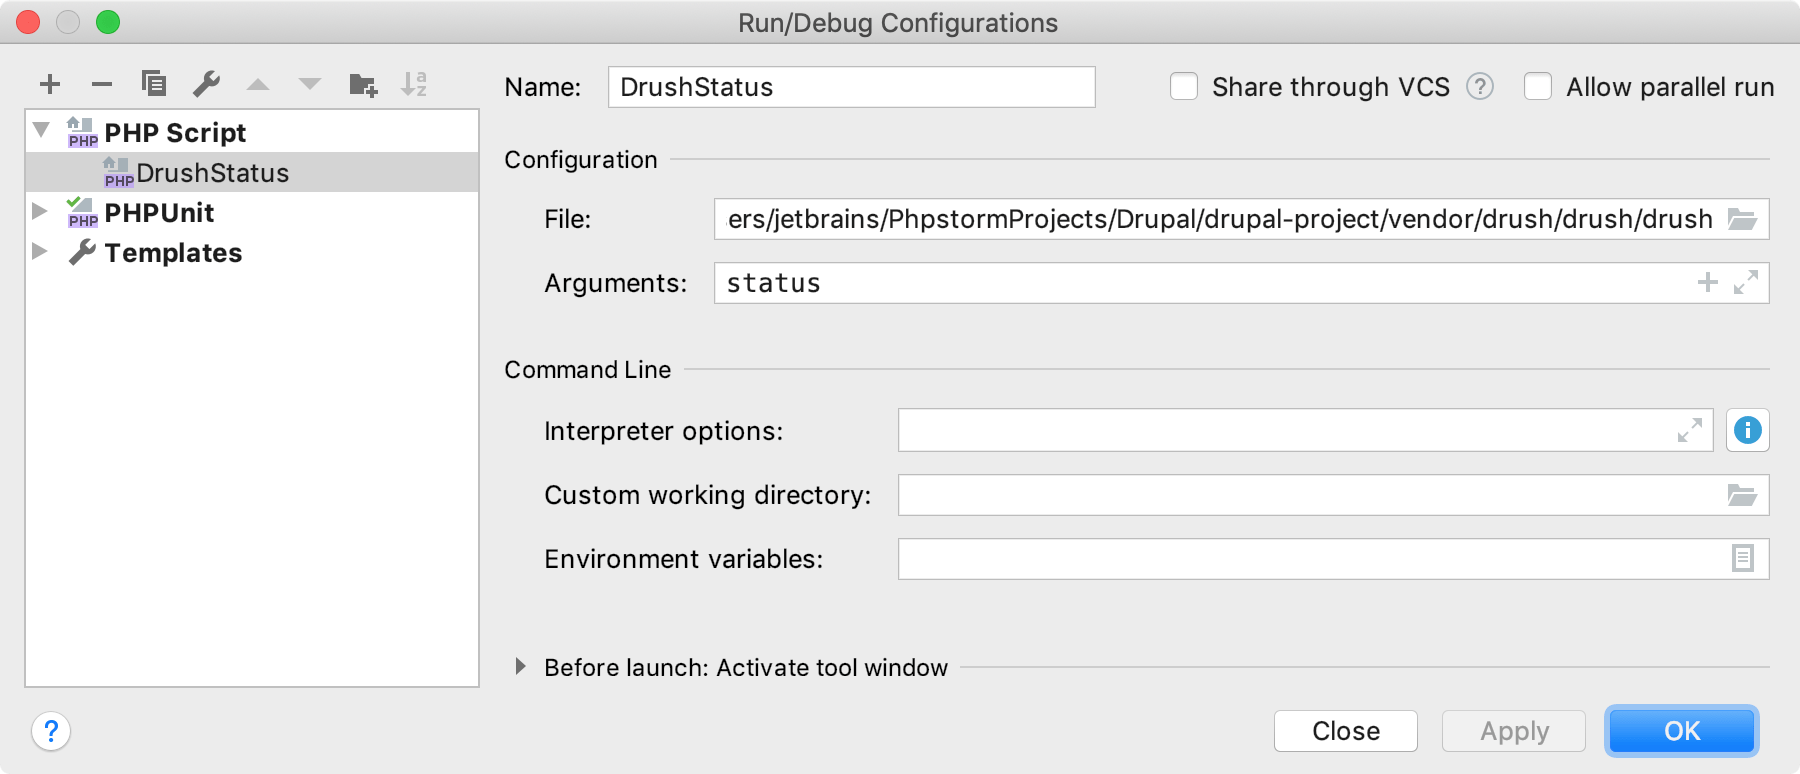 Run/Debug Configurations dialog for Drupal CLI command